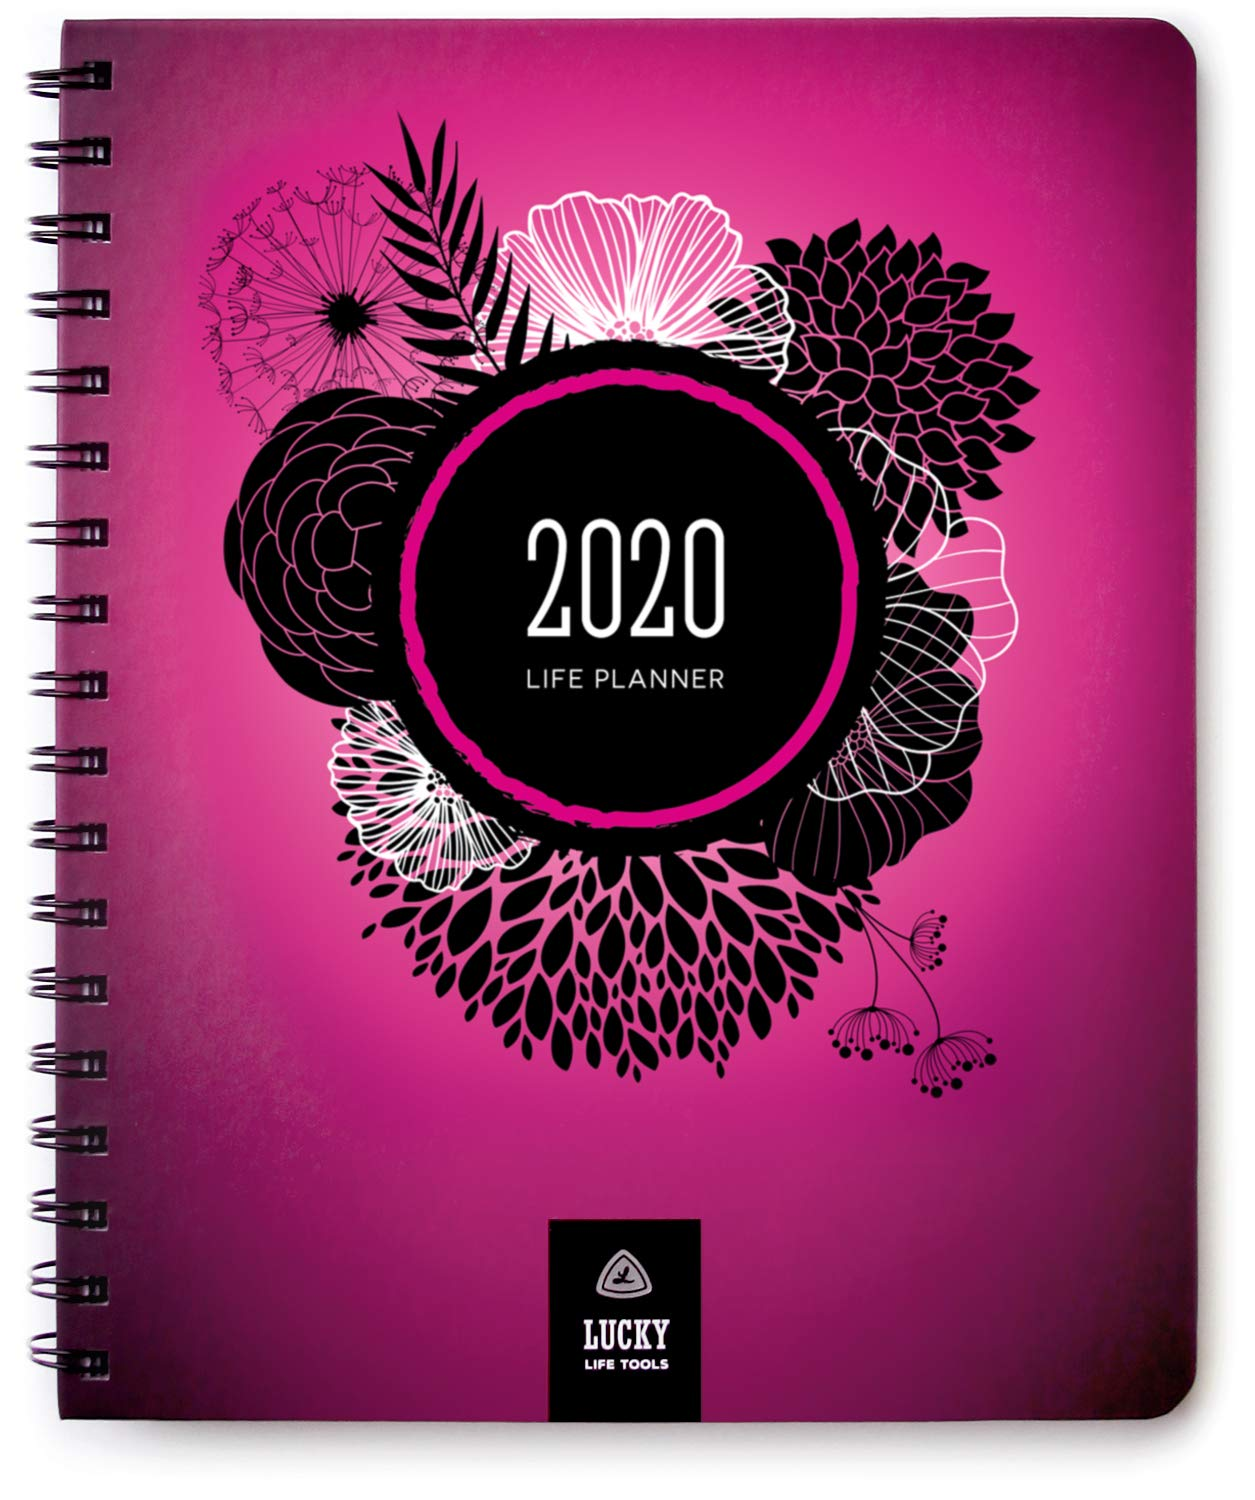 Life Planner & Goal Setting Agenda, by Lucky Life Tools (Pink Deluxe - 2020)